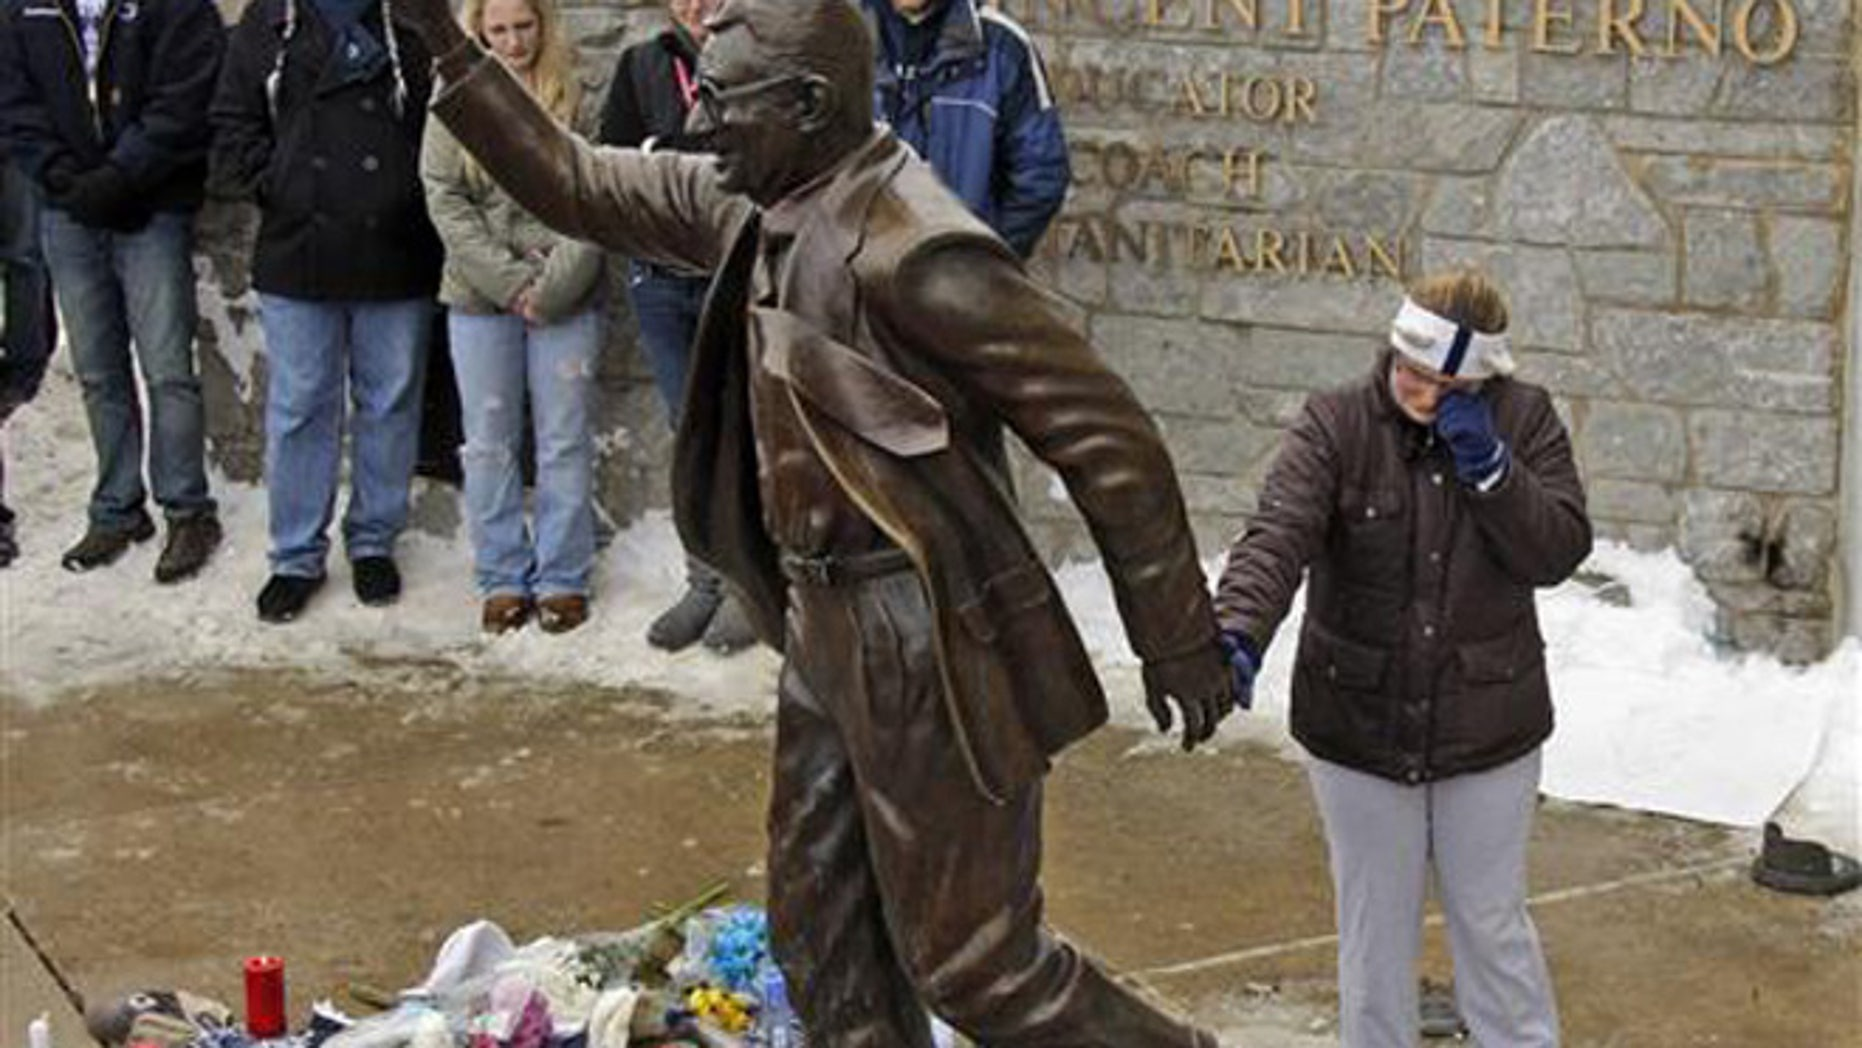 In this Jan. 22, 2012, file photo, a woman pays her respects at a statue of former Penn State football coach Joe Paterno outside Beaver Stadium on the Penn State University campus in State College, Pa.